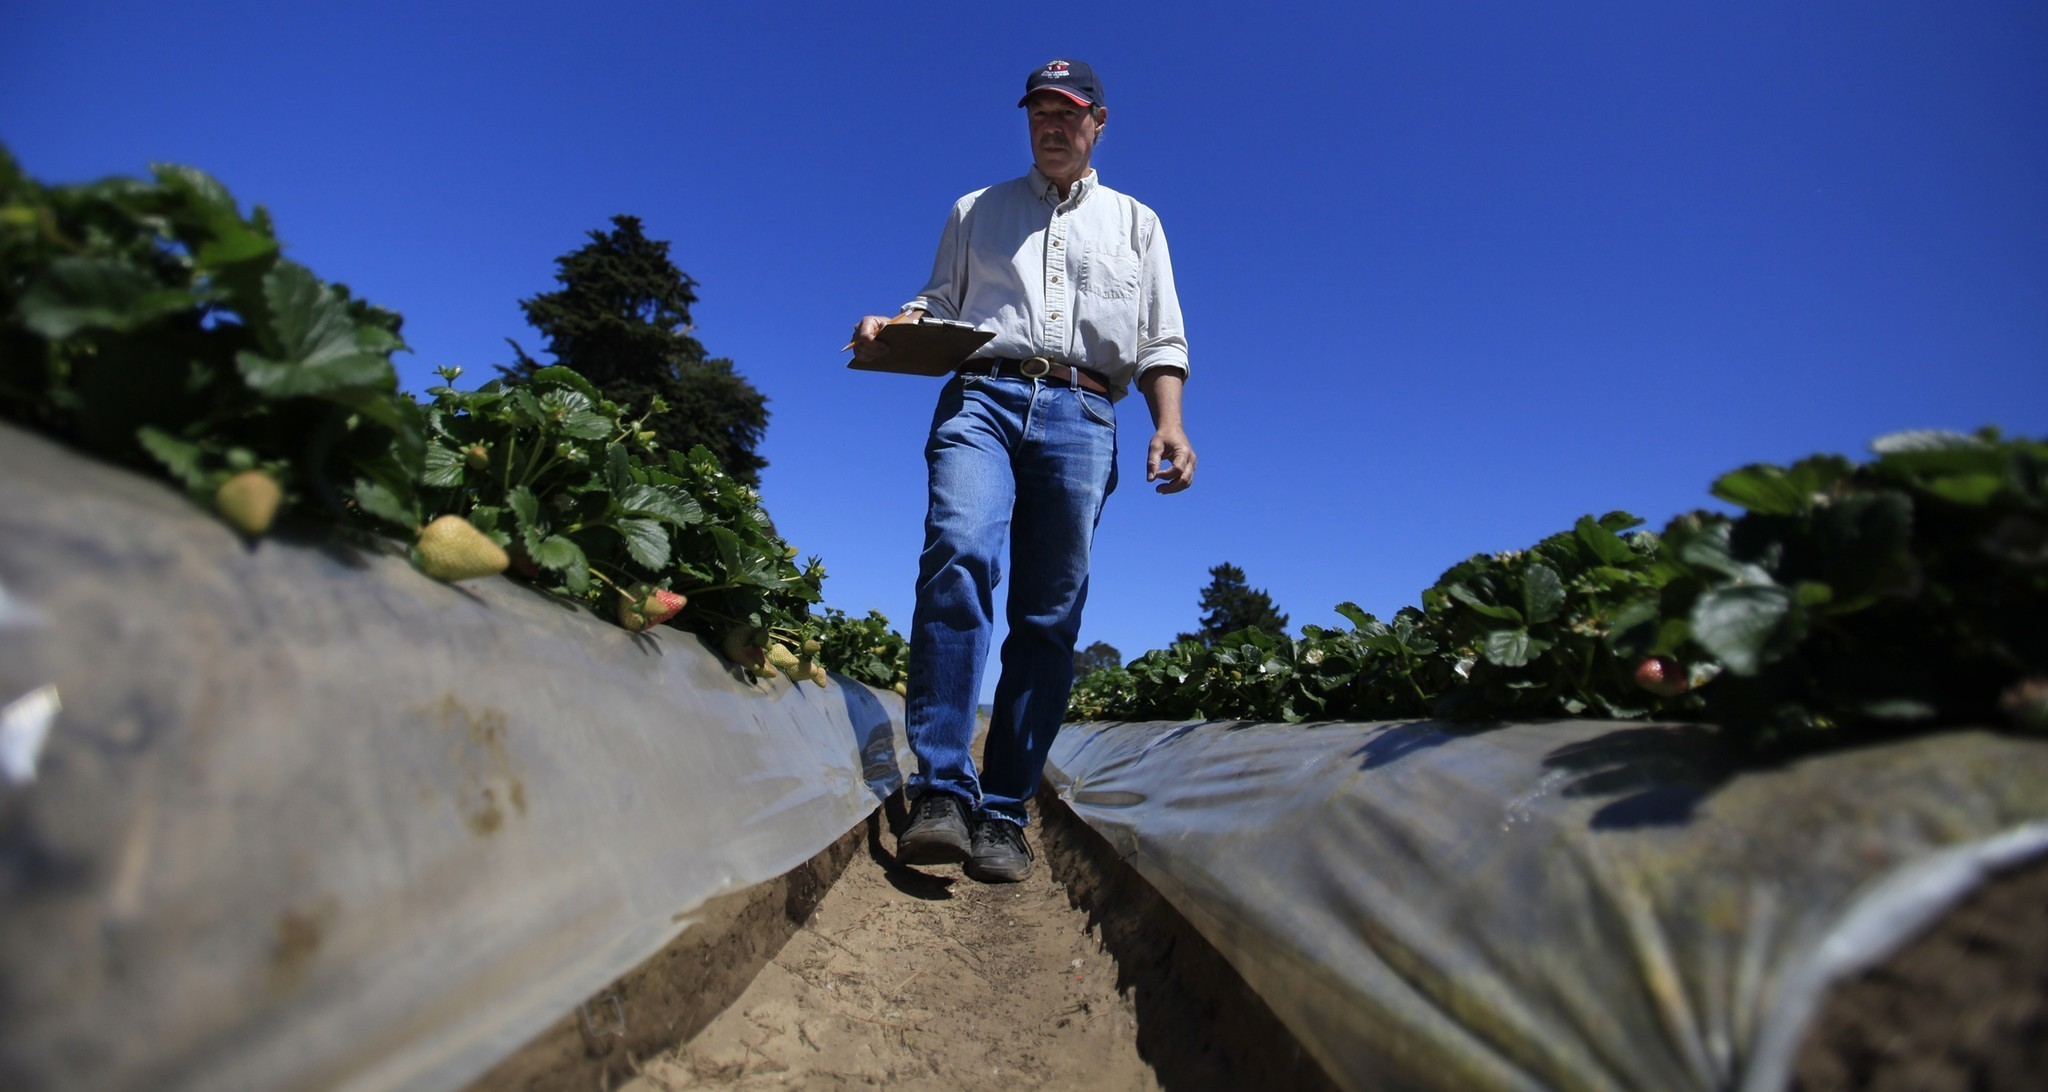 In strawberry lawsuit, jury sides with UC Davis over former professor